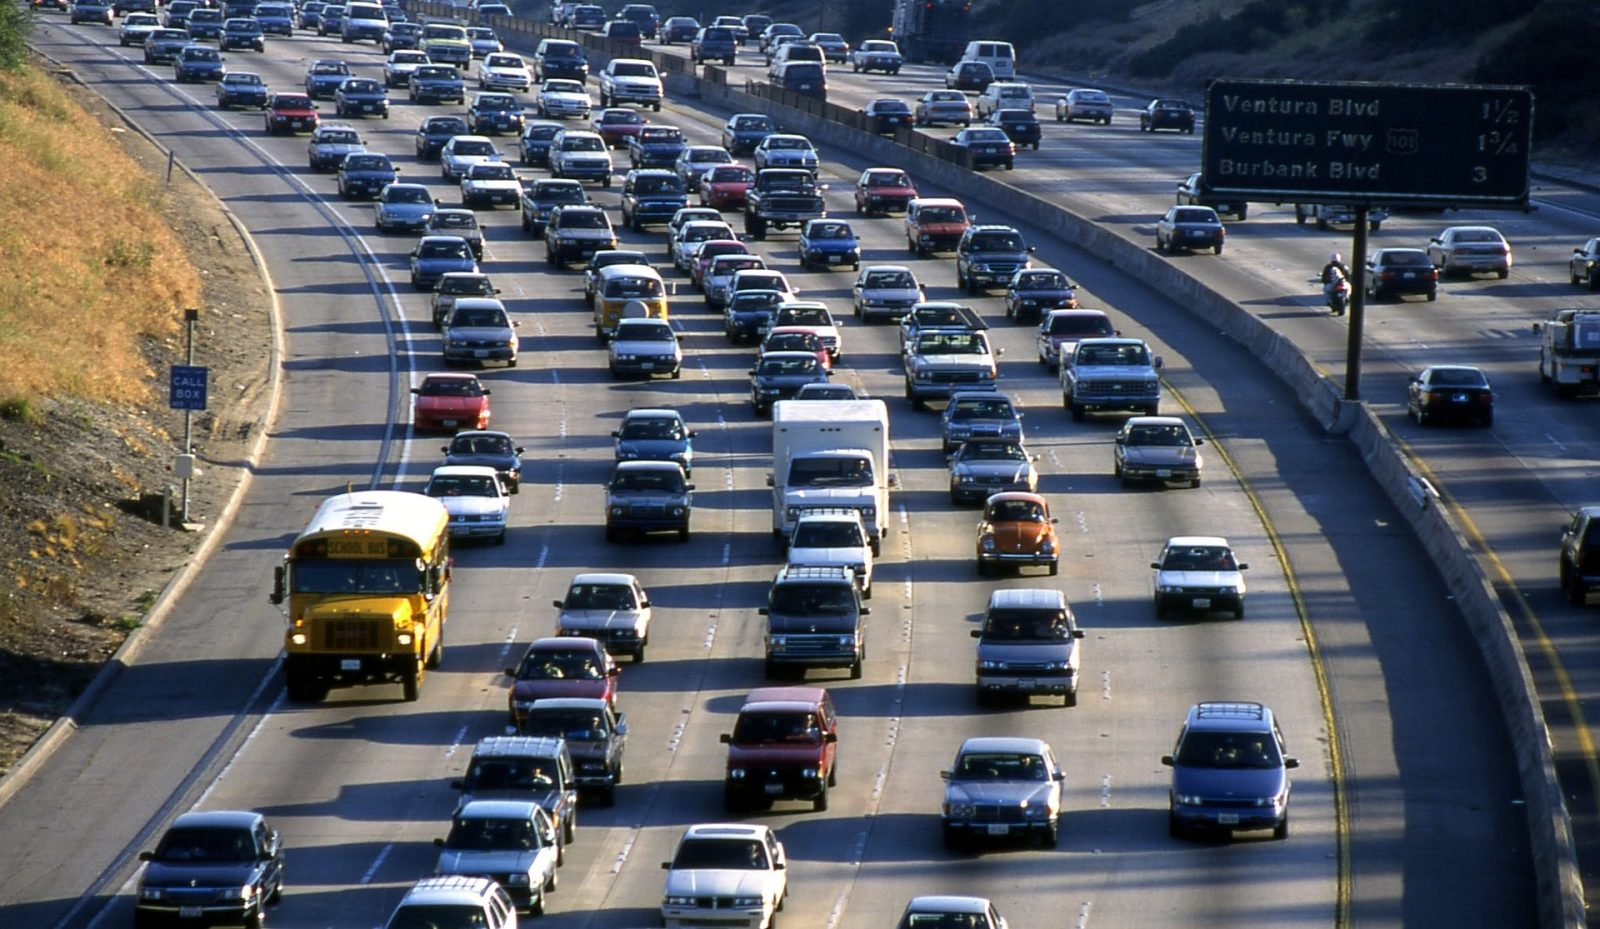 EPA's own analysis shows fuel efficiency rollback will kill people and cost money (op-ed)